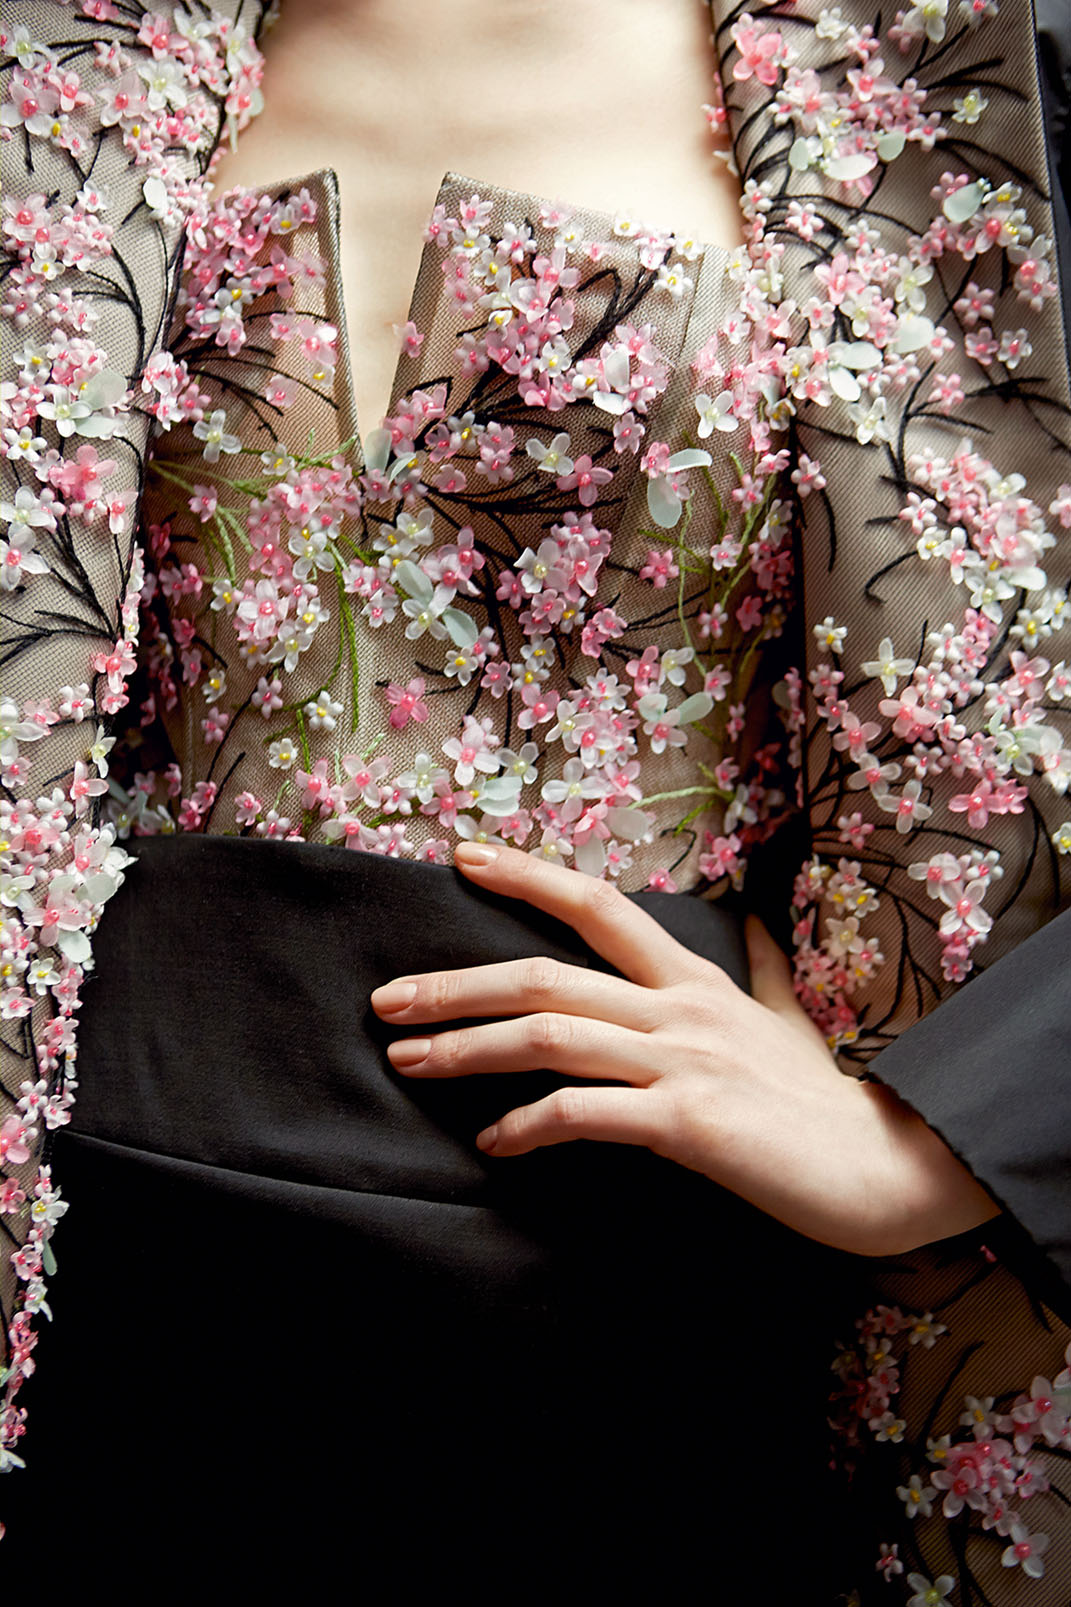 High fashion photo of a model wearing a floral Dior blouse and black skirt